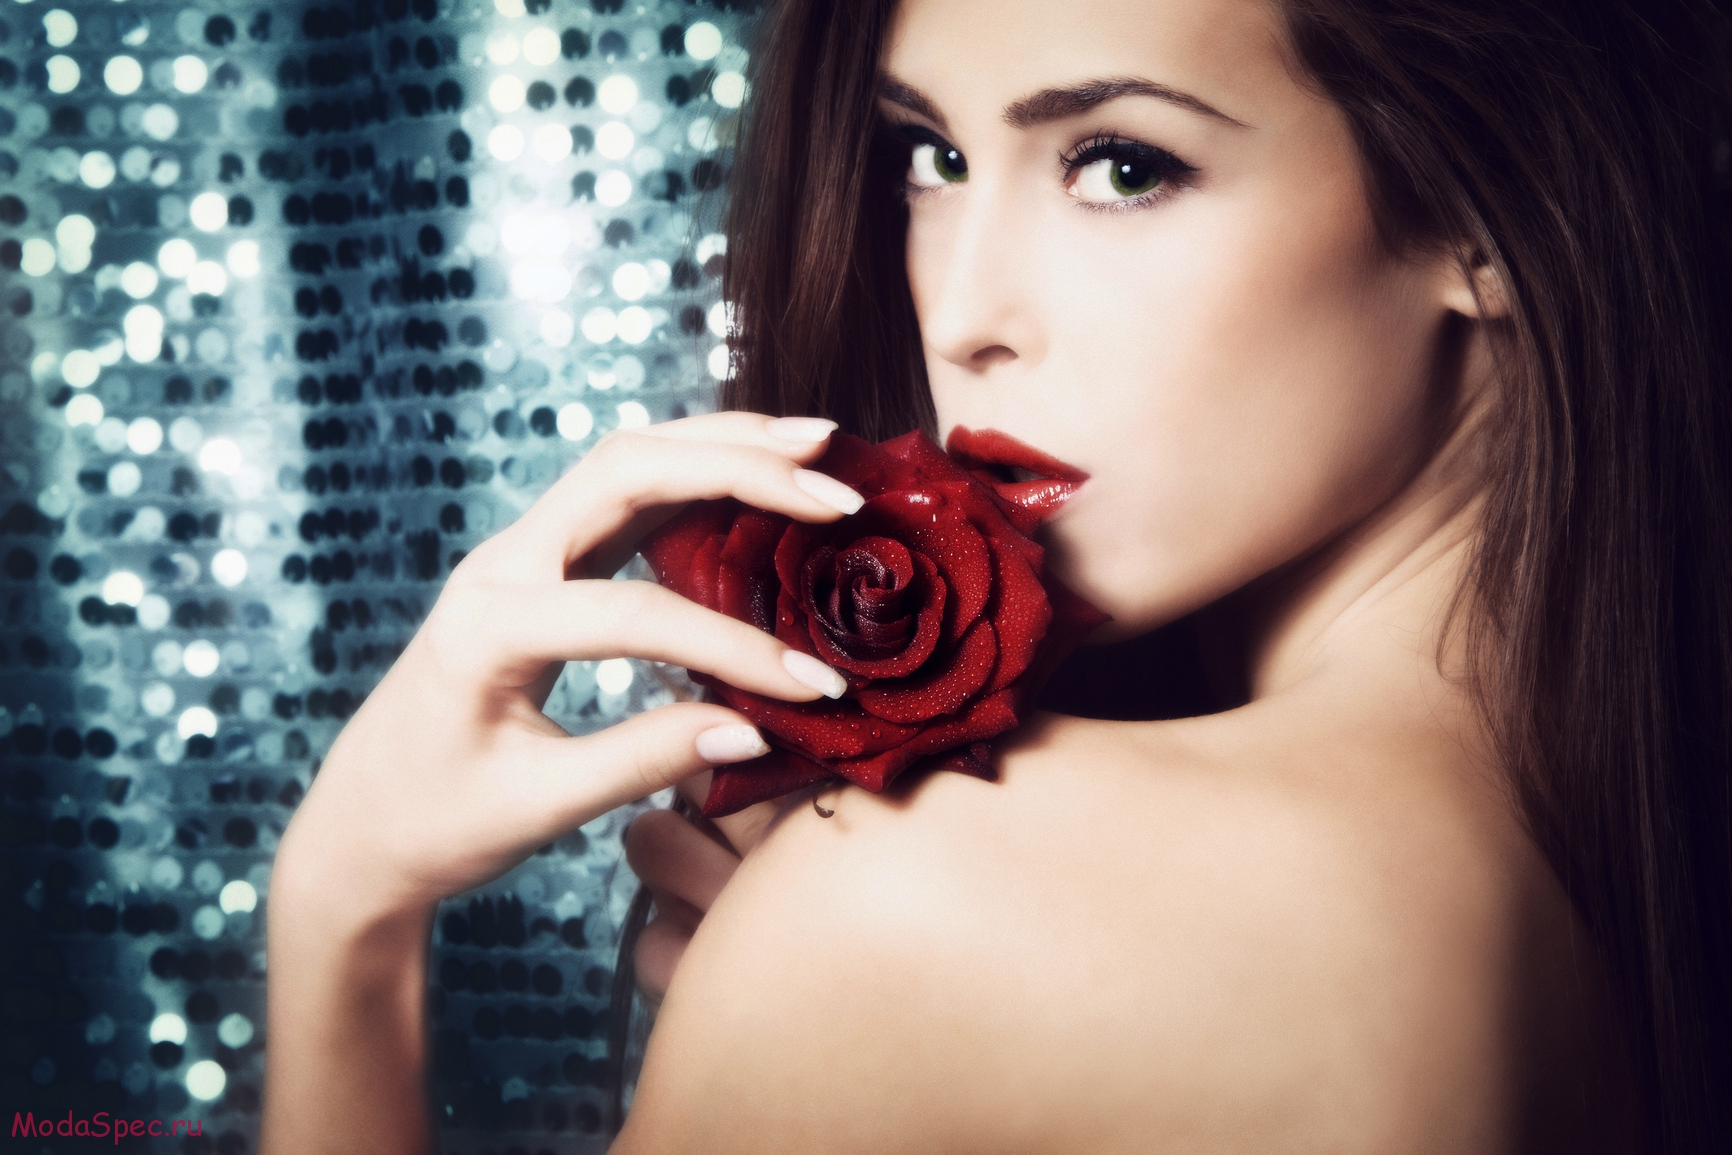 young woman beauty portrait with red rose in front of glowing background small amount og grain added